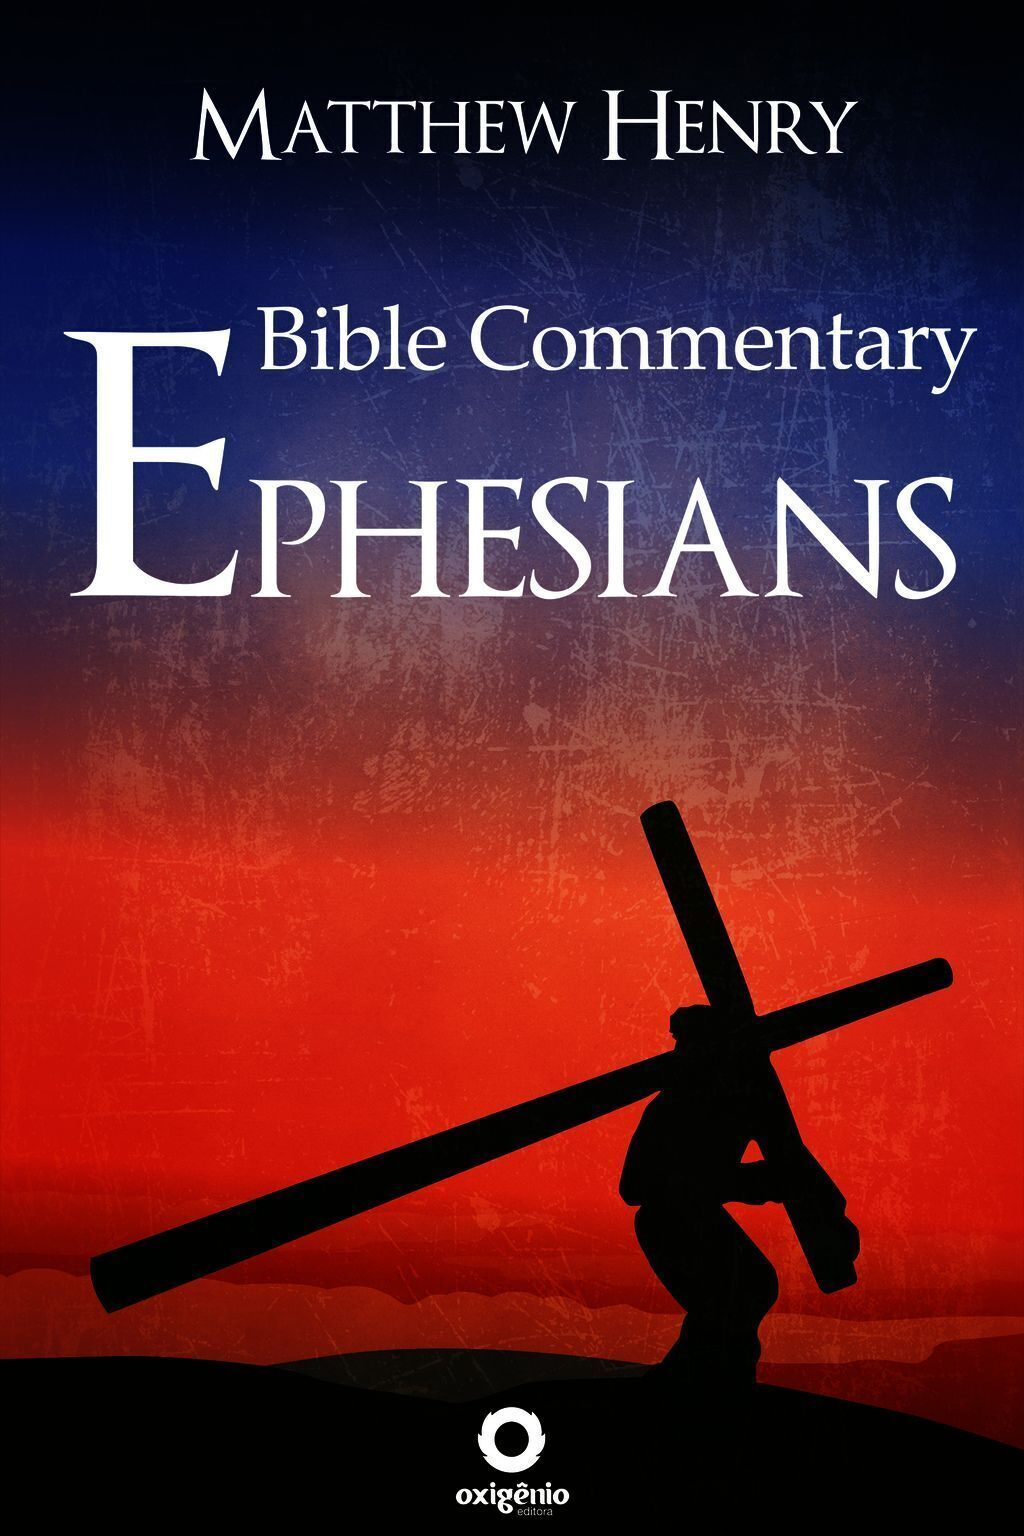 Bible Commentary - Ephesians